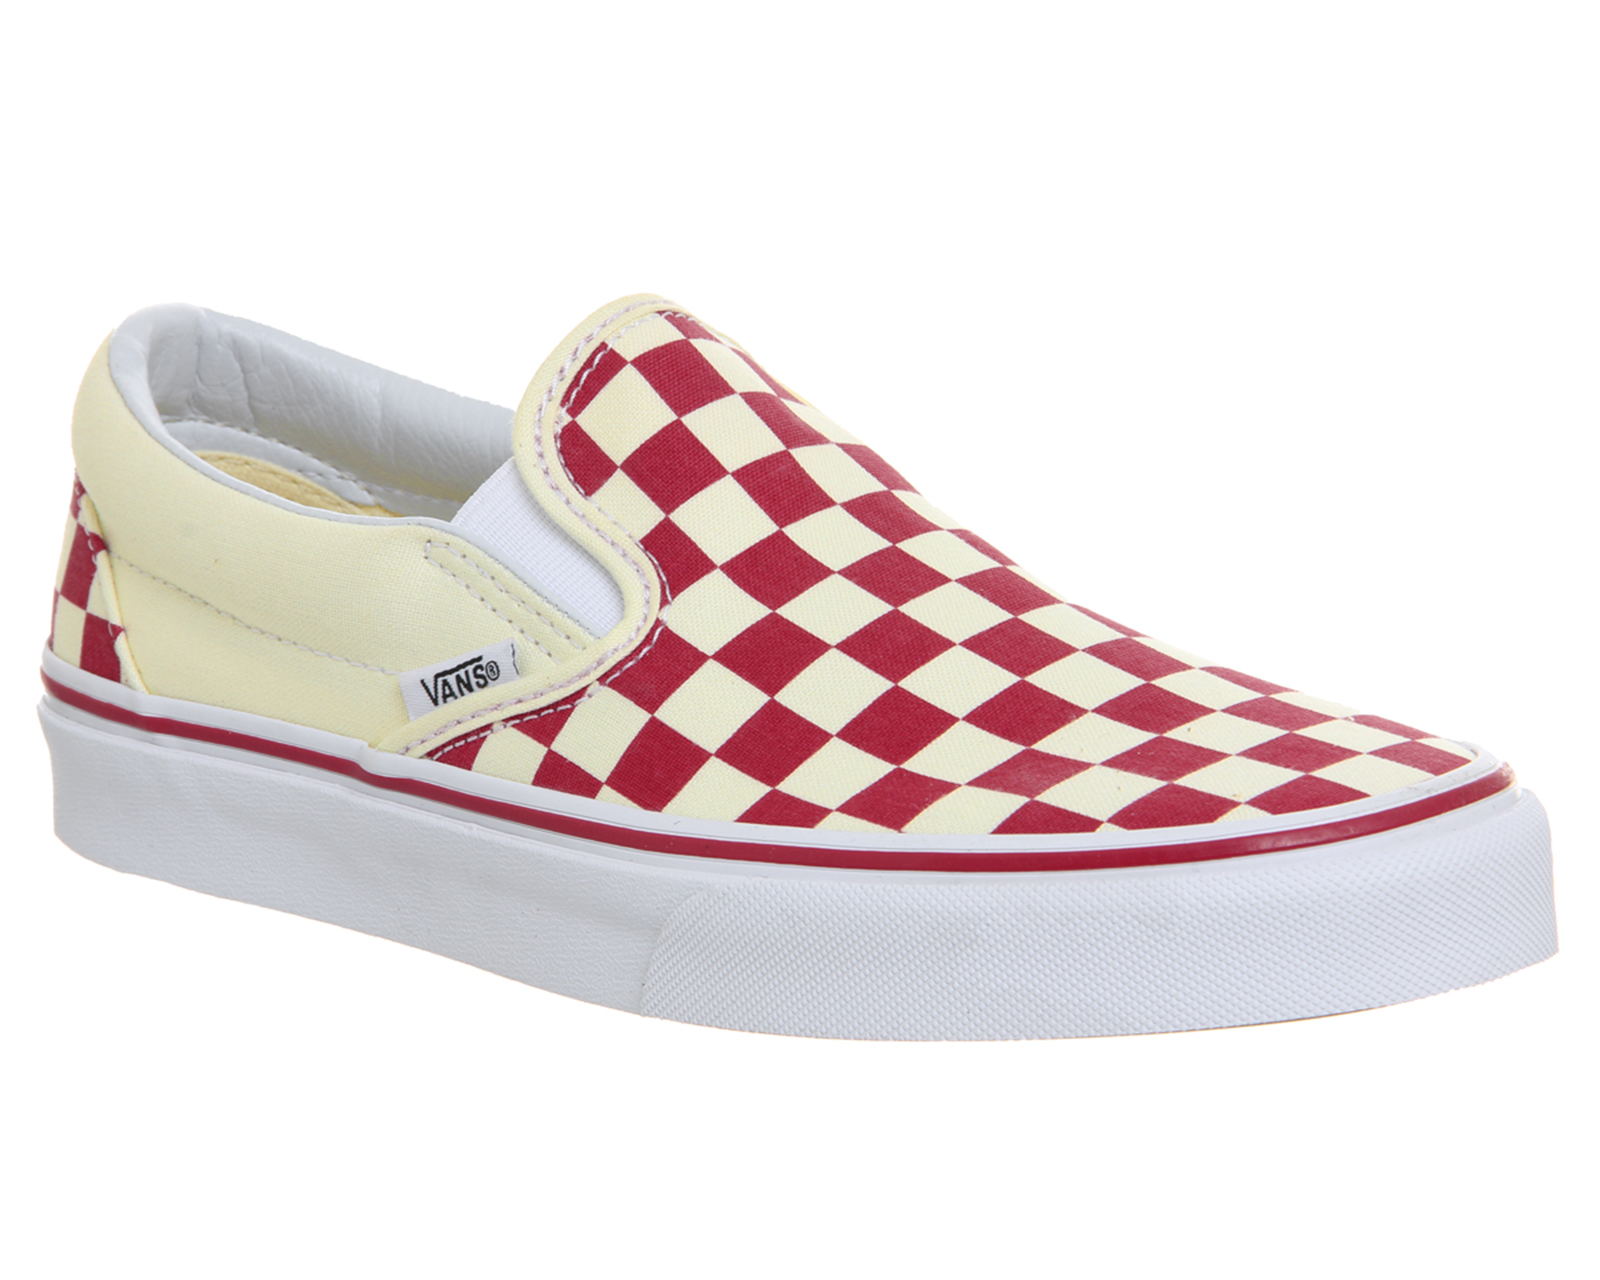 5392425dadb74 Sentinel Mens Vans Classic Slip On Trainers RACING RED CLASSIC WHITE  CHECKERBOARD Trainer